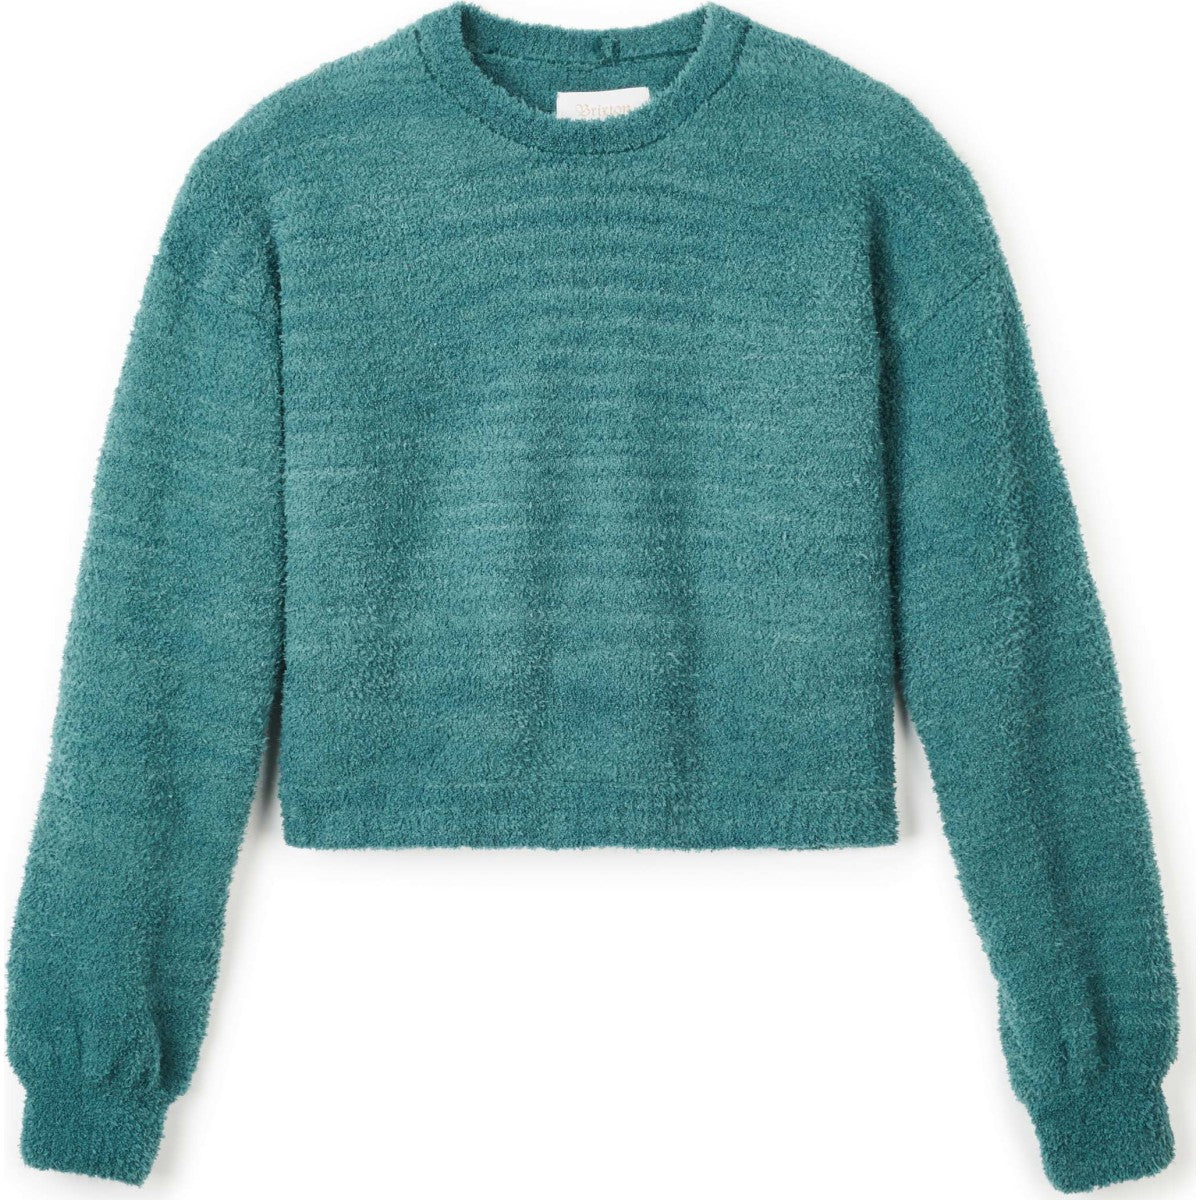 BRIXTON MAIDEN SWEATER